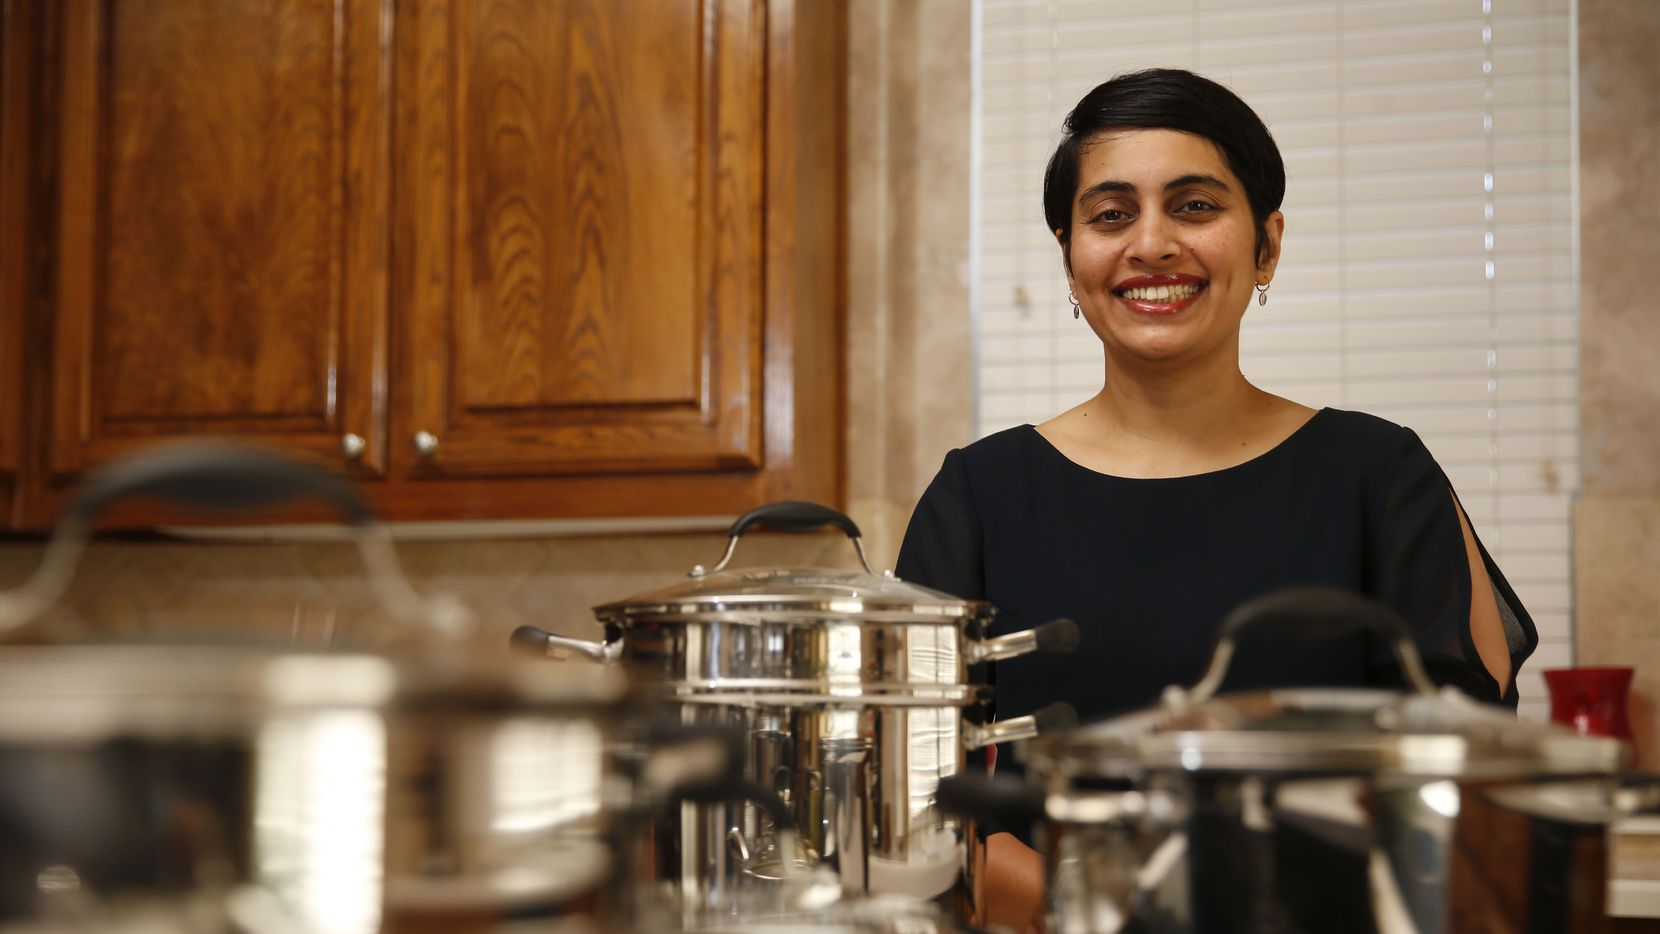 Asha Kangralkar, cofounder and CEO of Avacraft, operates her growing company from her Plano home.